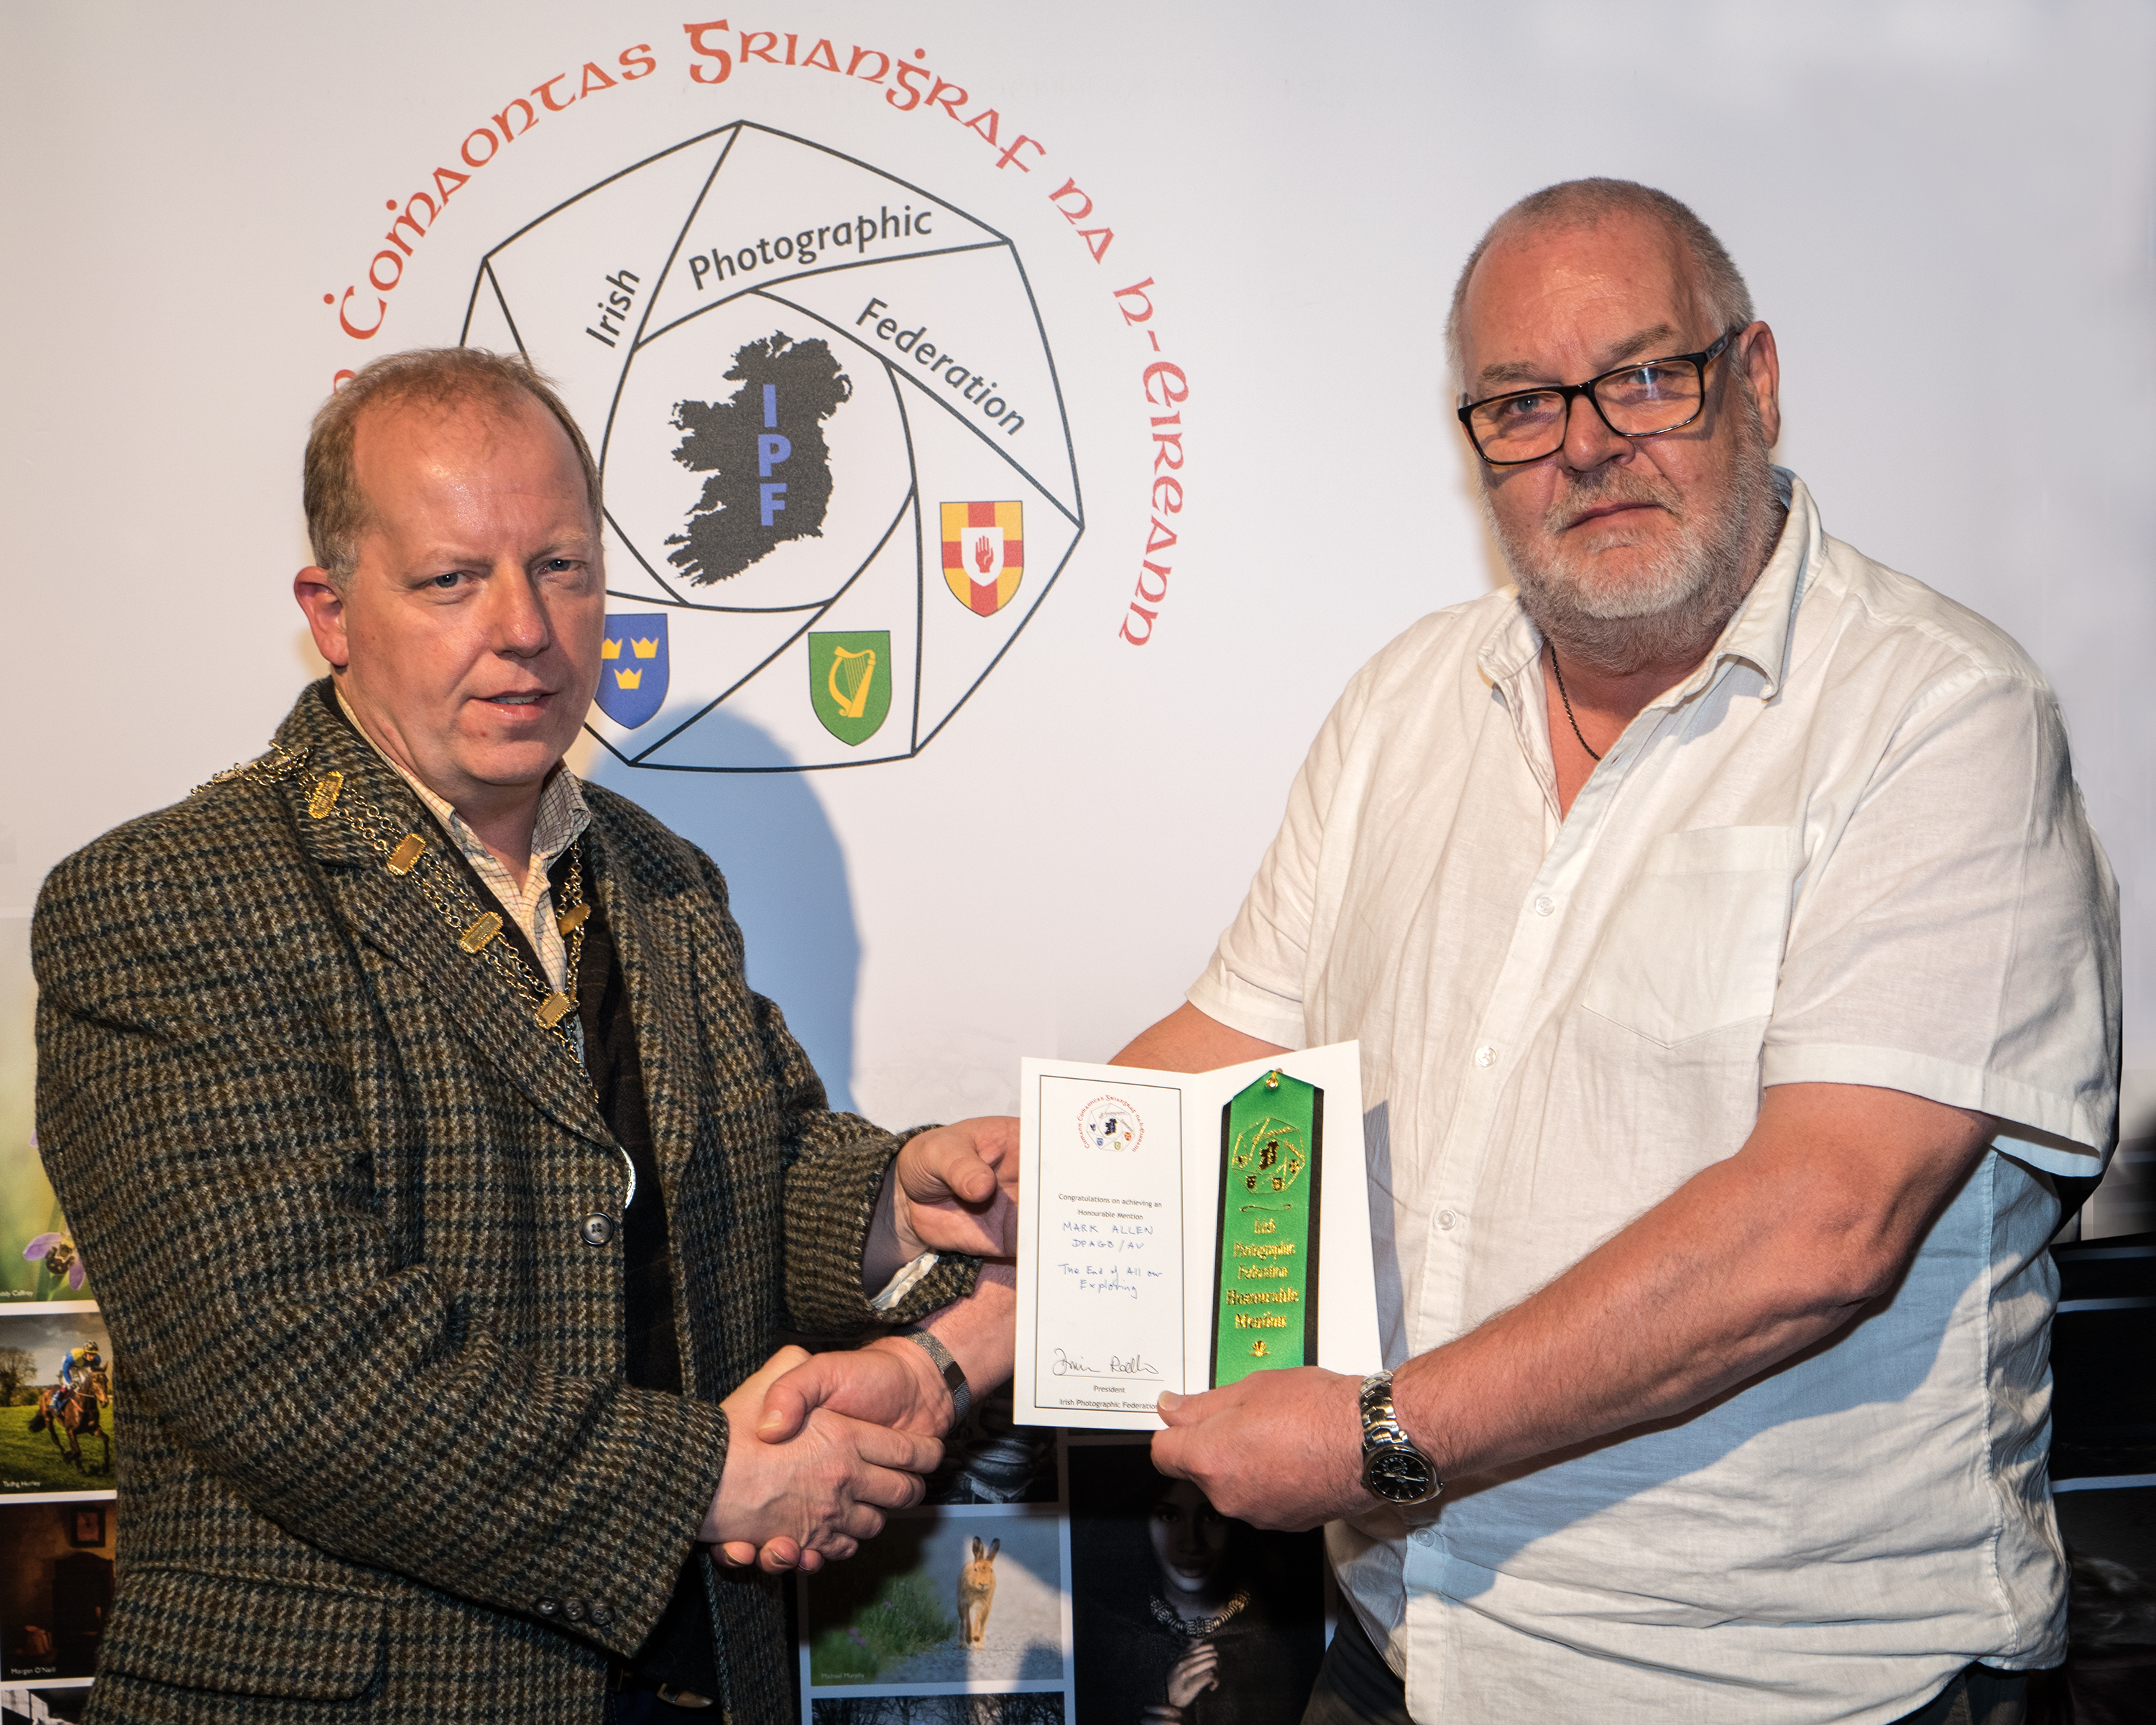 Dominic Reddin, FIPF presenting an Honourable Mention Certificate to Mark Allen, DPAGB-AV